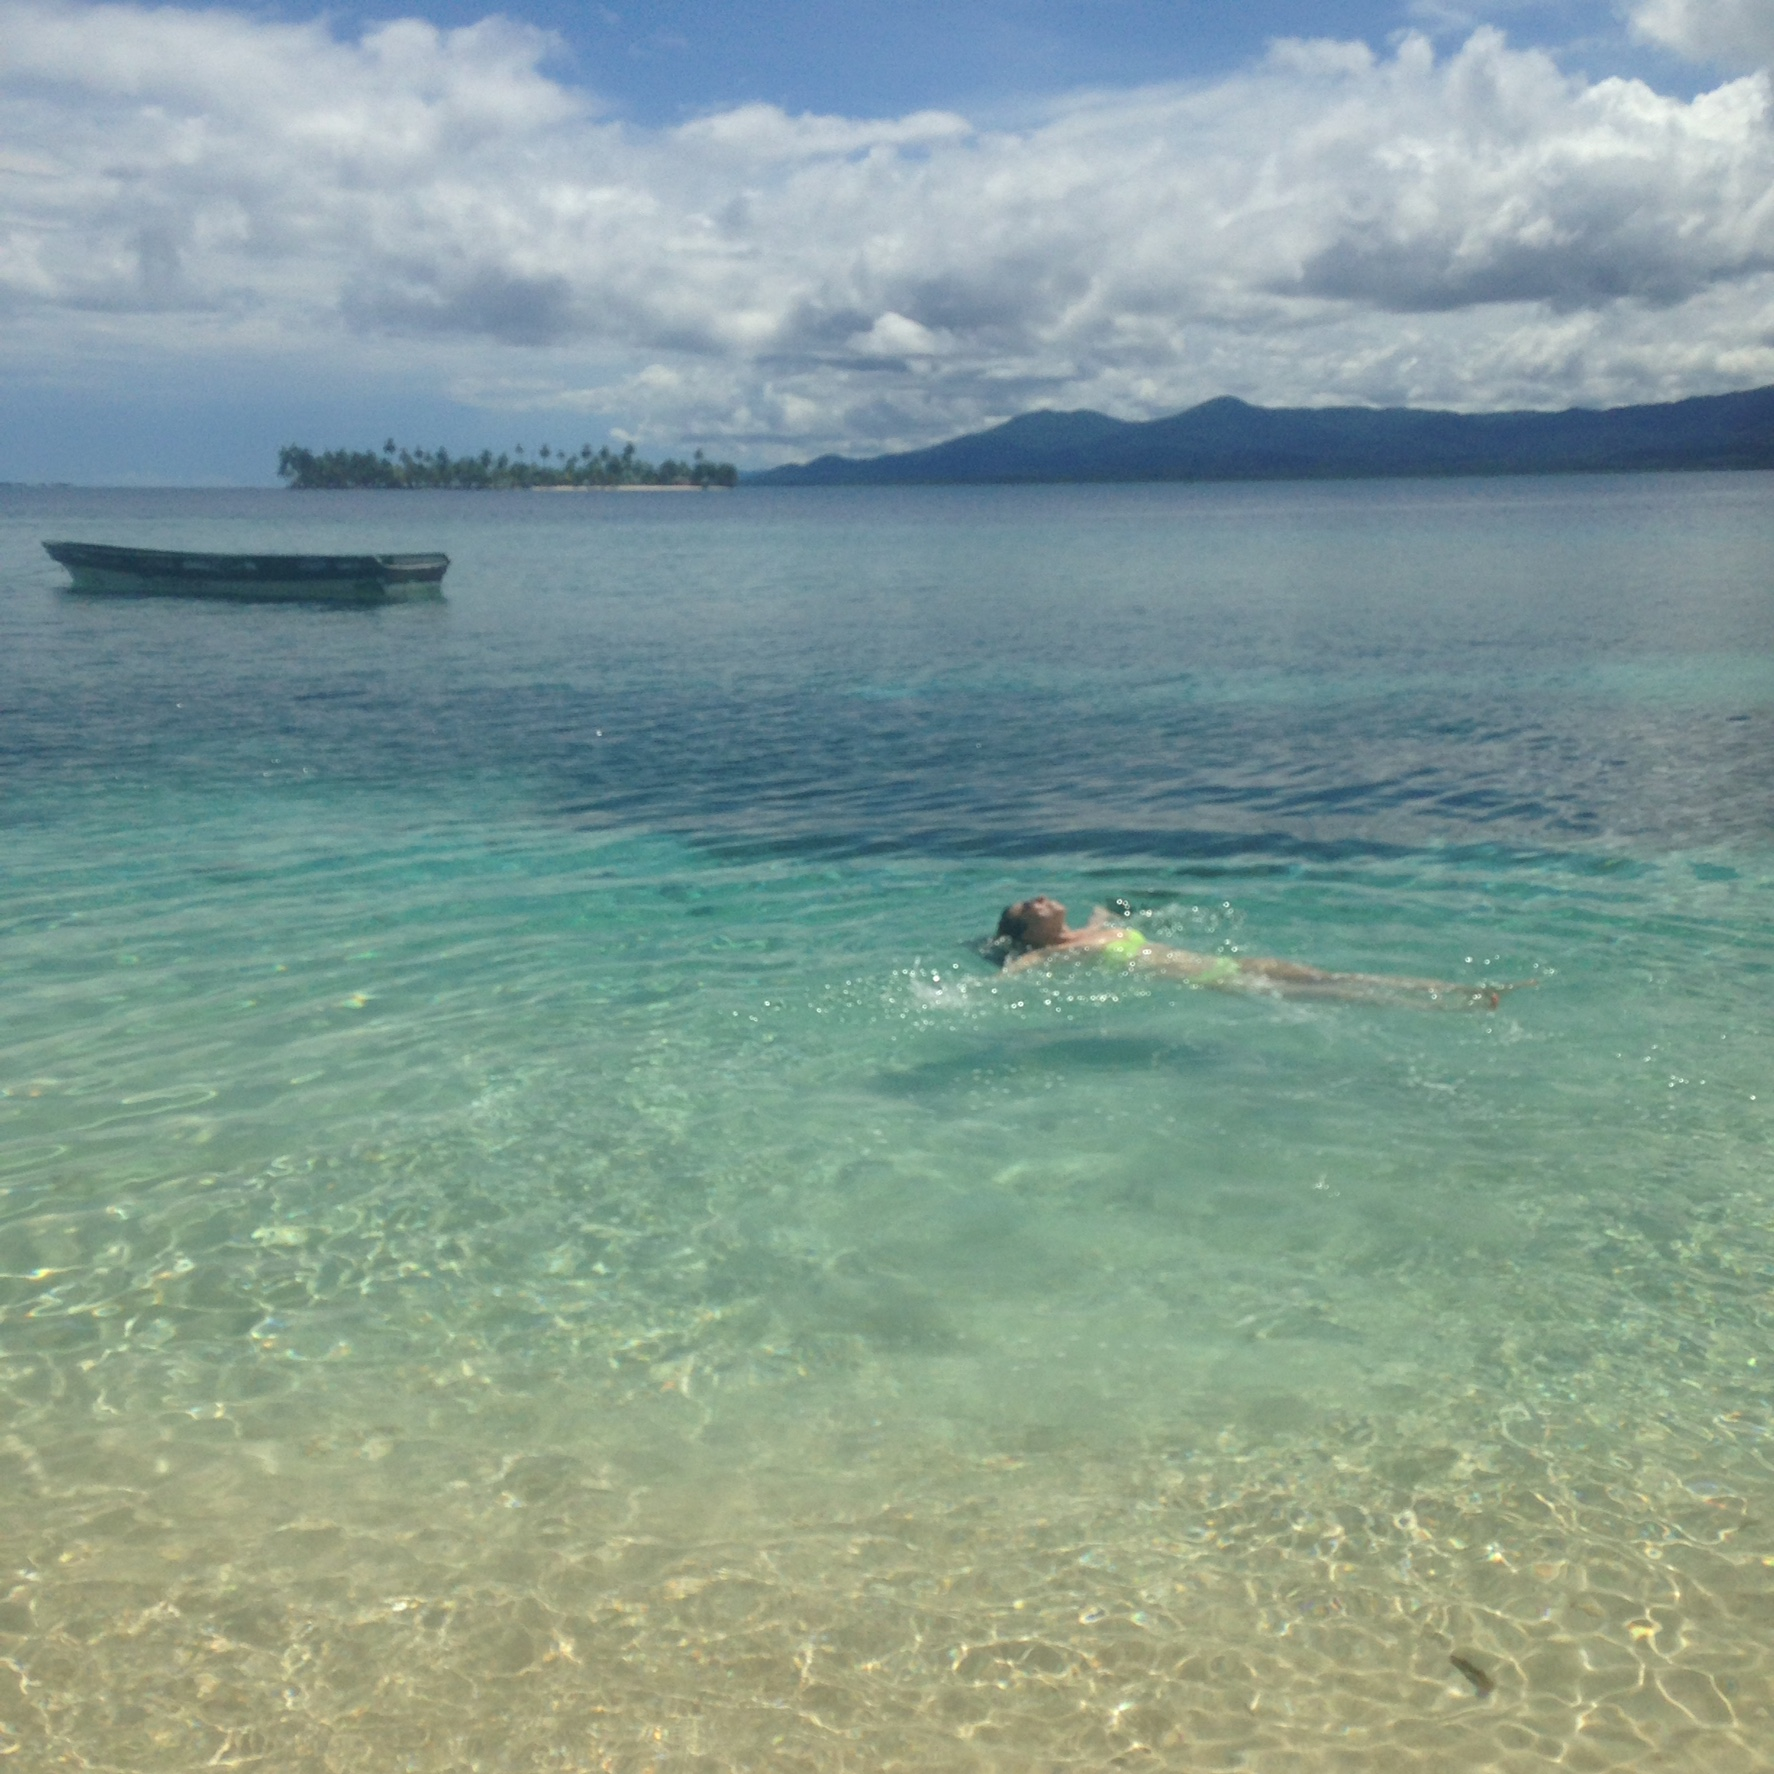 Floating in the Caribbean Sea